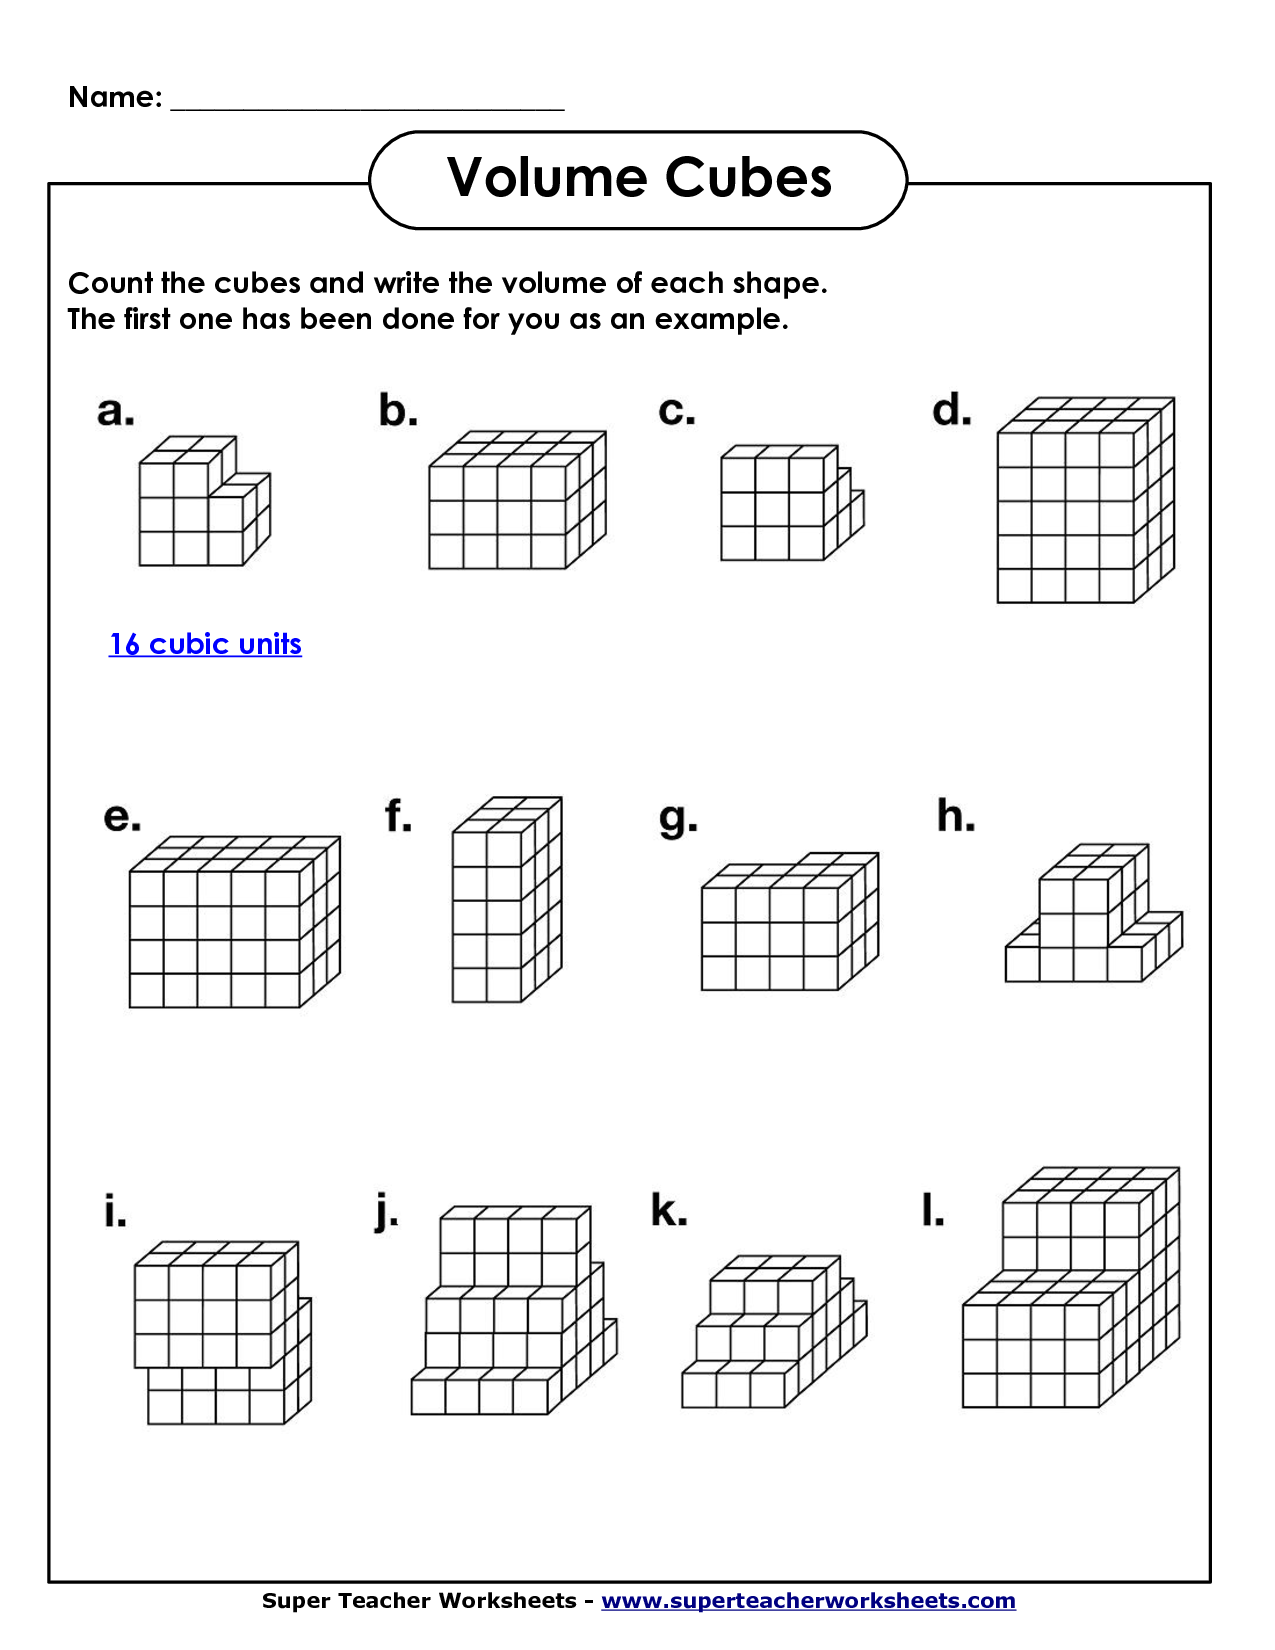 Worksheets Volume Cubes Worksheet our 5 favorite prek math worksheets count cubes and student volume worksheets